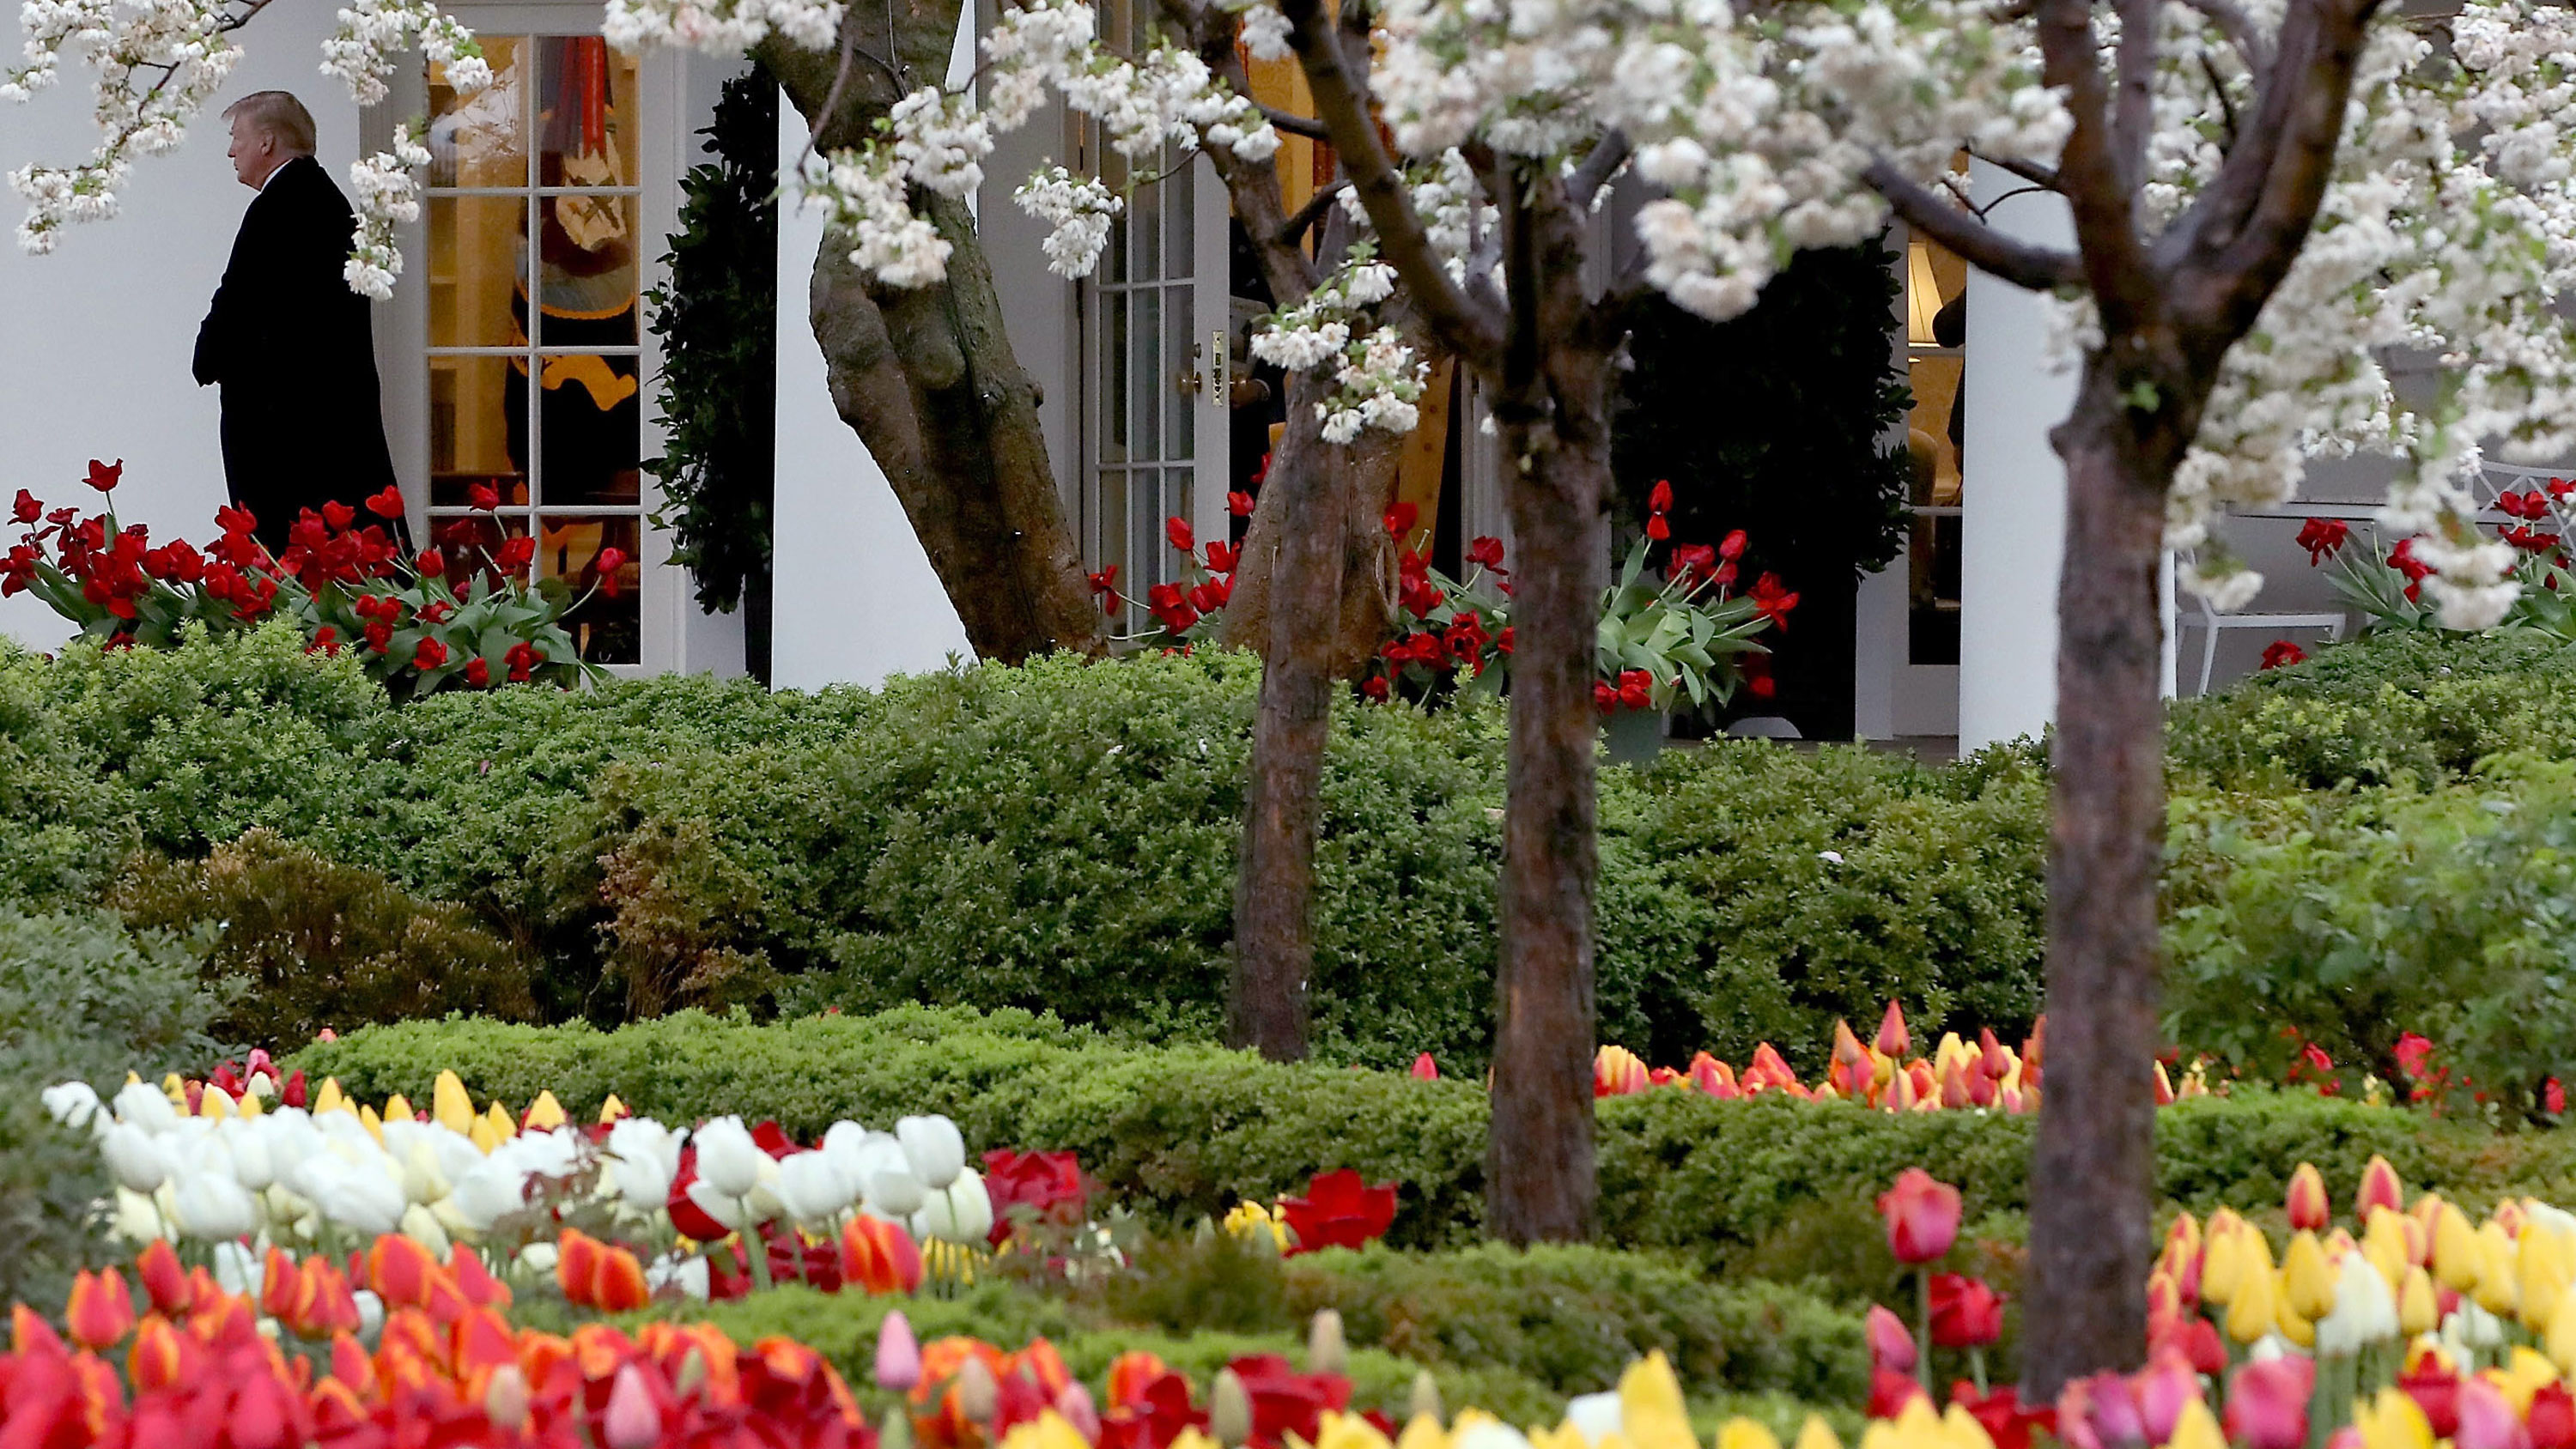 Newly renovated White House Rose Garden to be unveiled next week